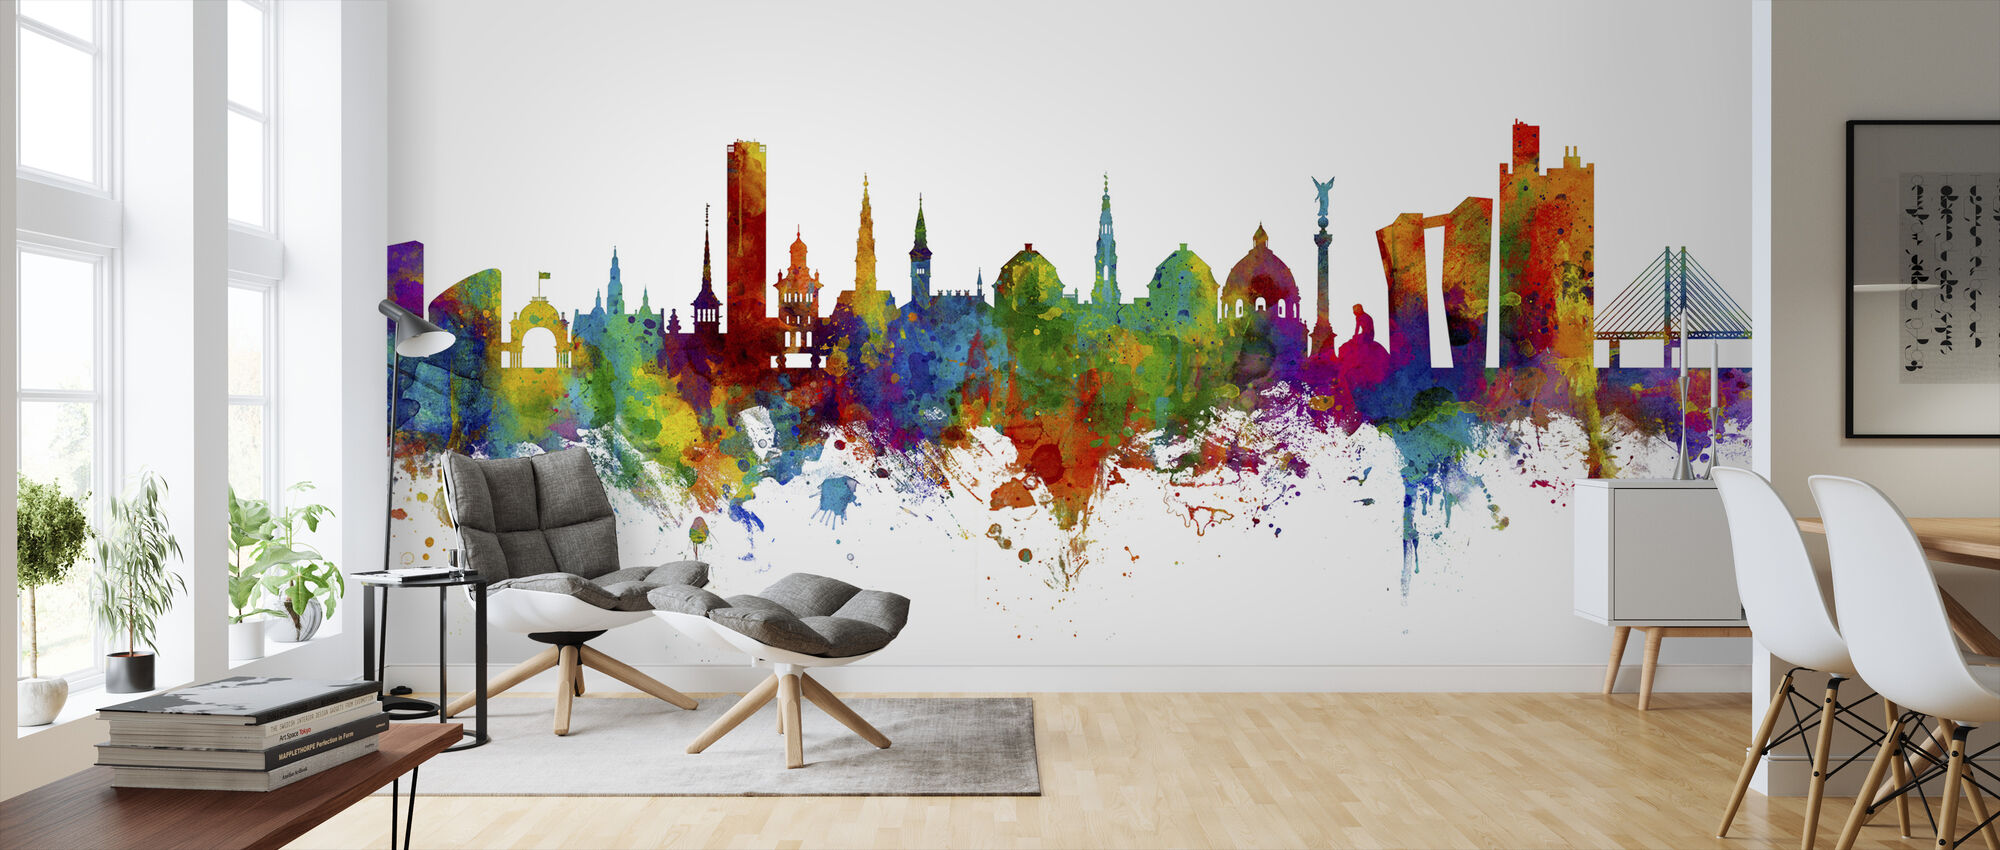 Copenhagen Skyline - Wallpaper - Living Room